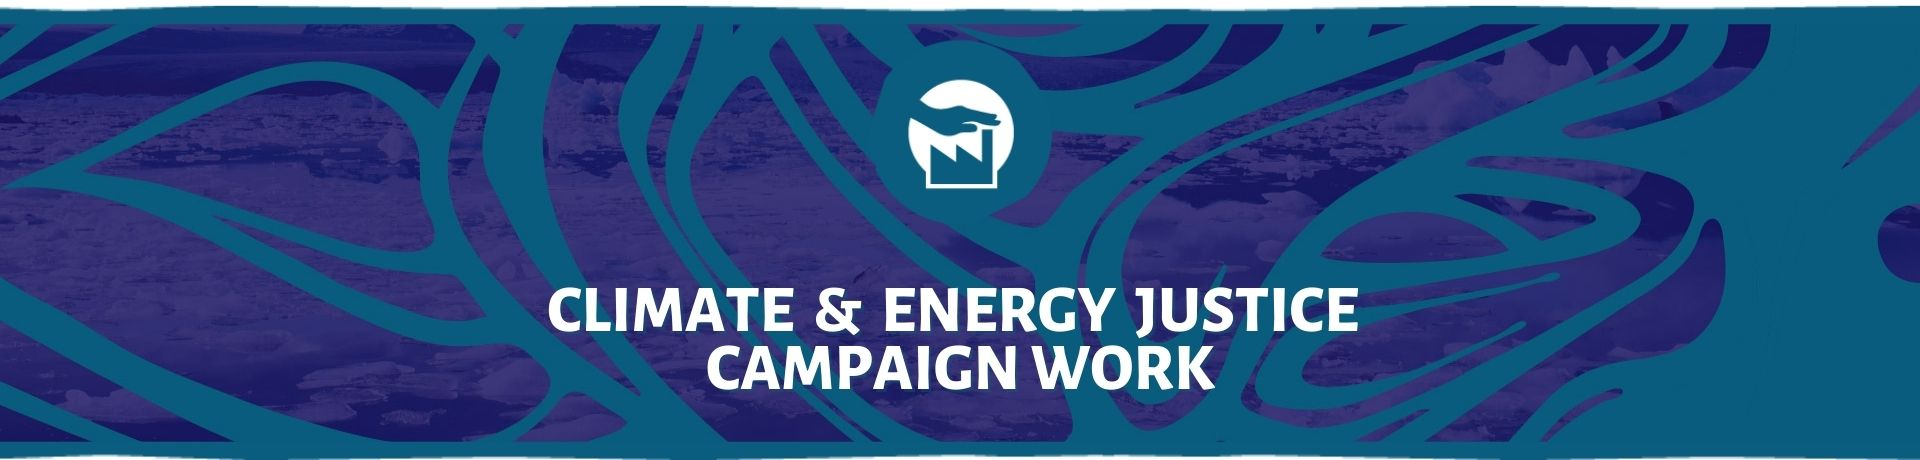 Climate & Energy Justice Campaigns